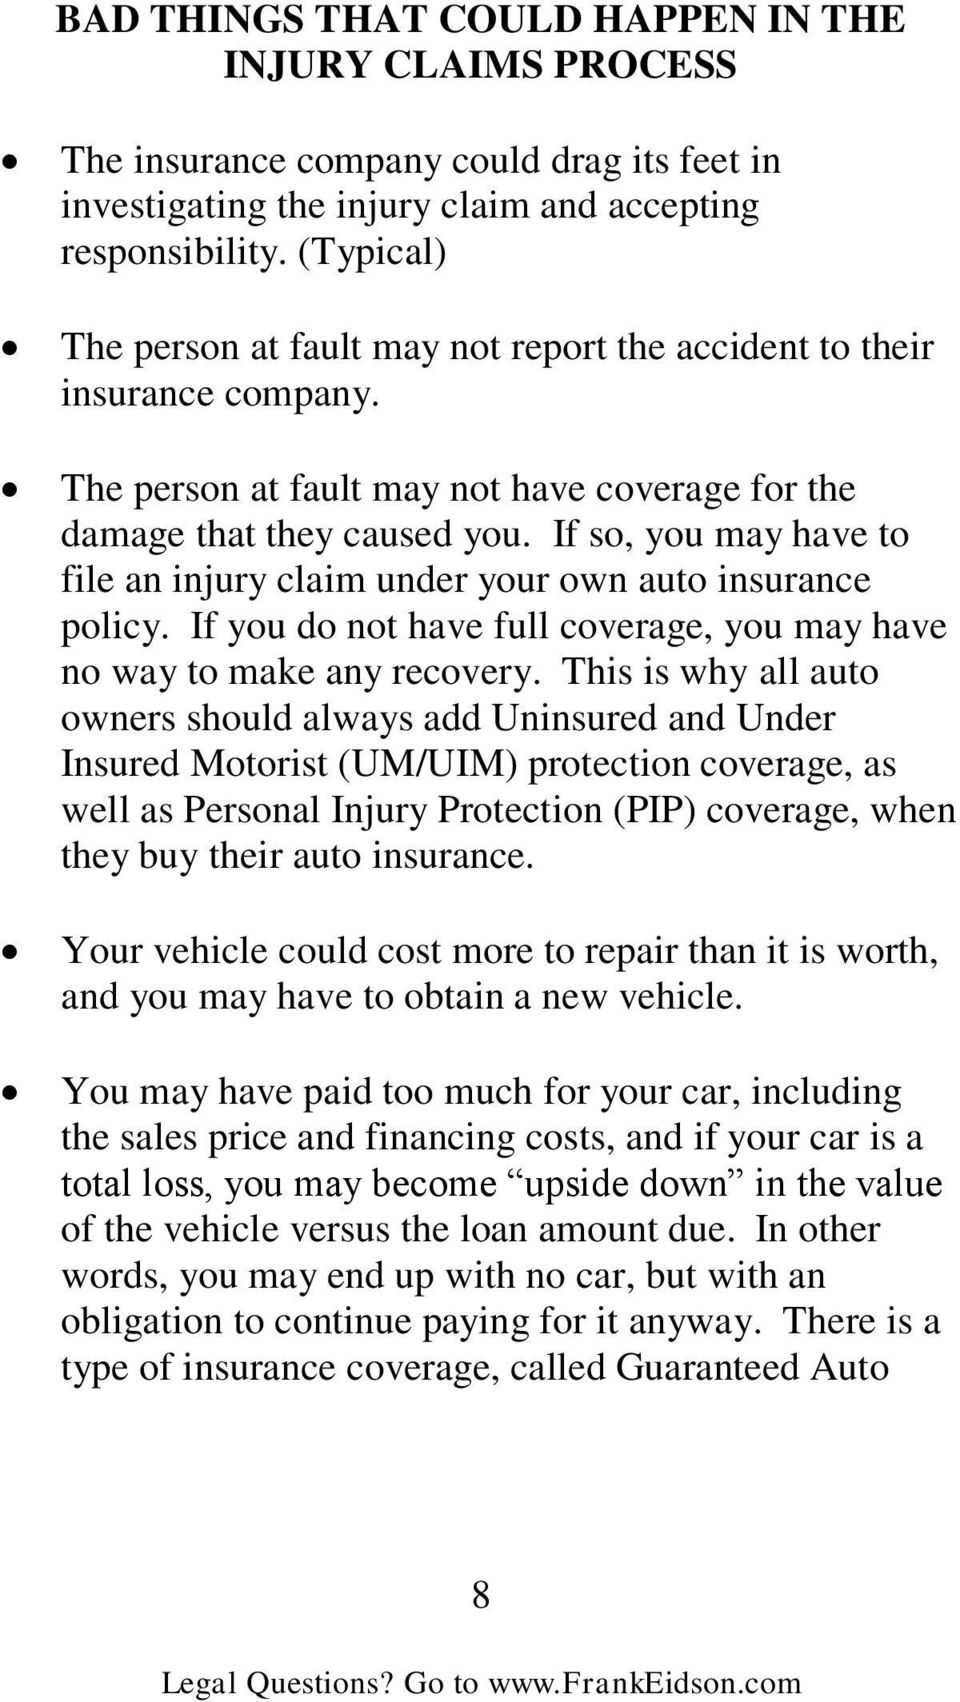 If so, you may have to file an injury claim under your own auto insurance policy. If you do not have full coverage, you may have no way to make any recovery.